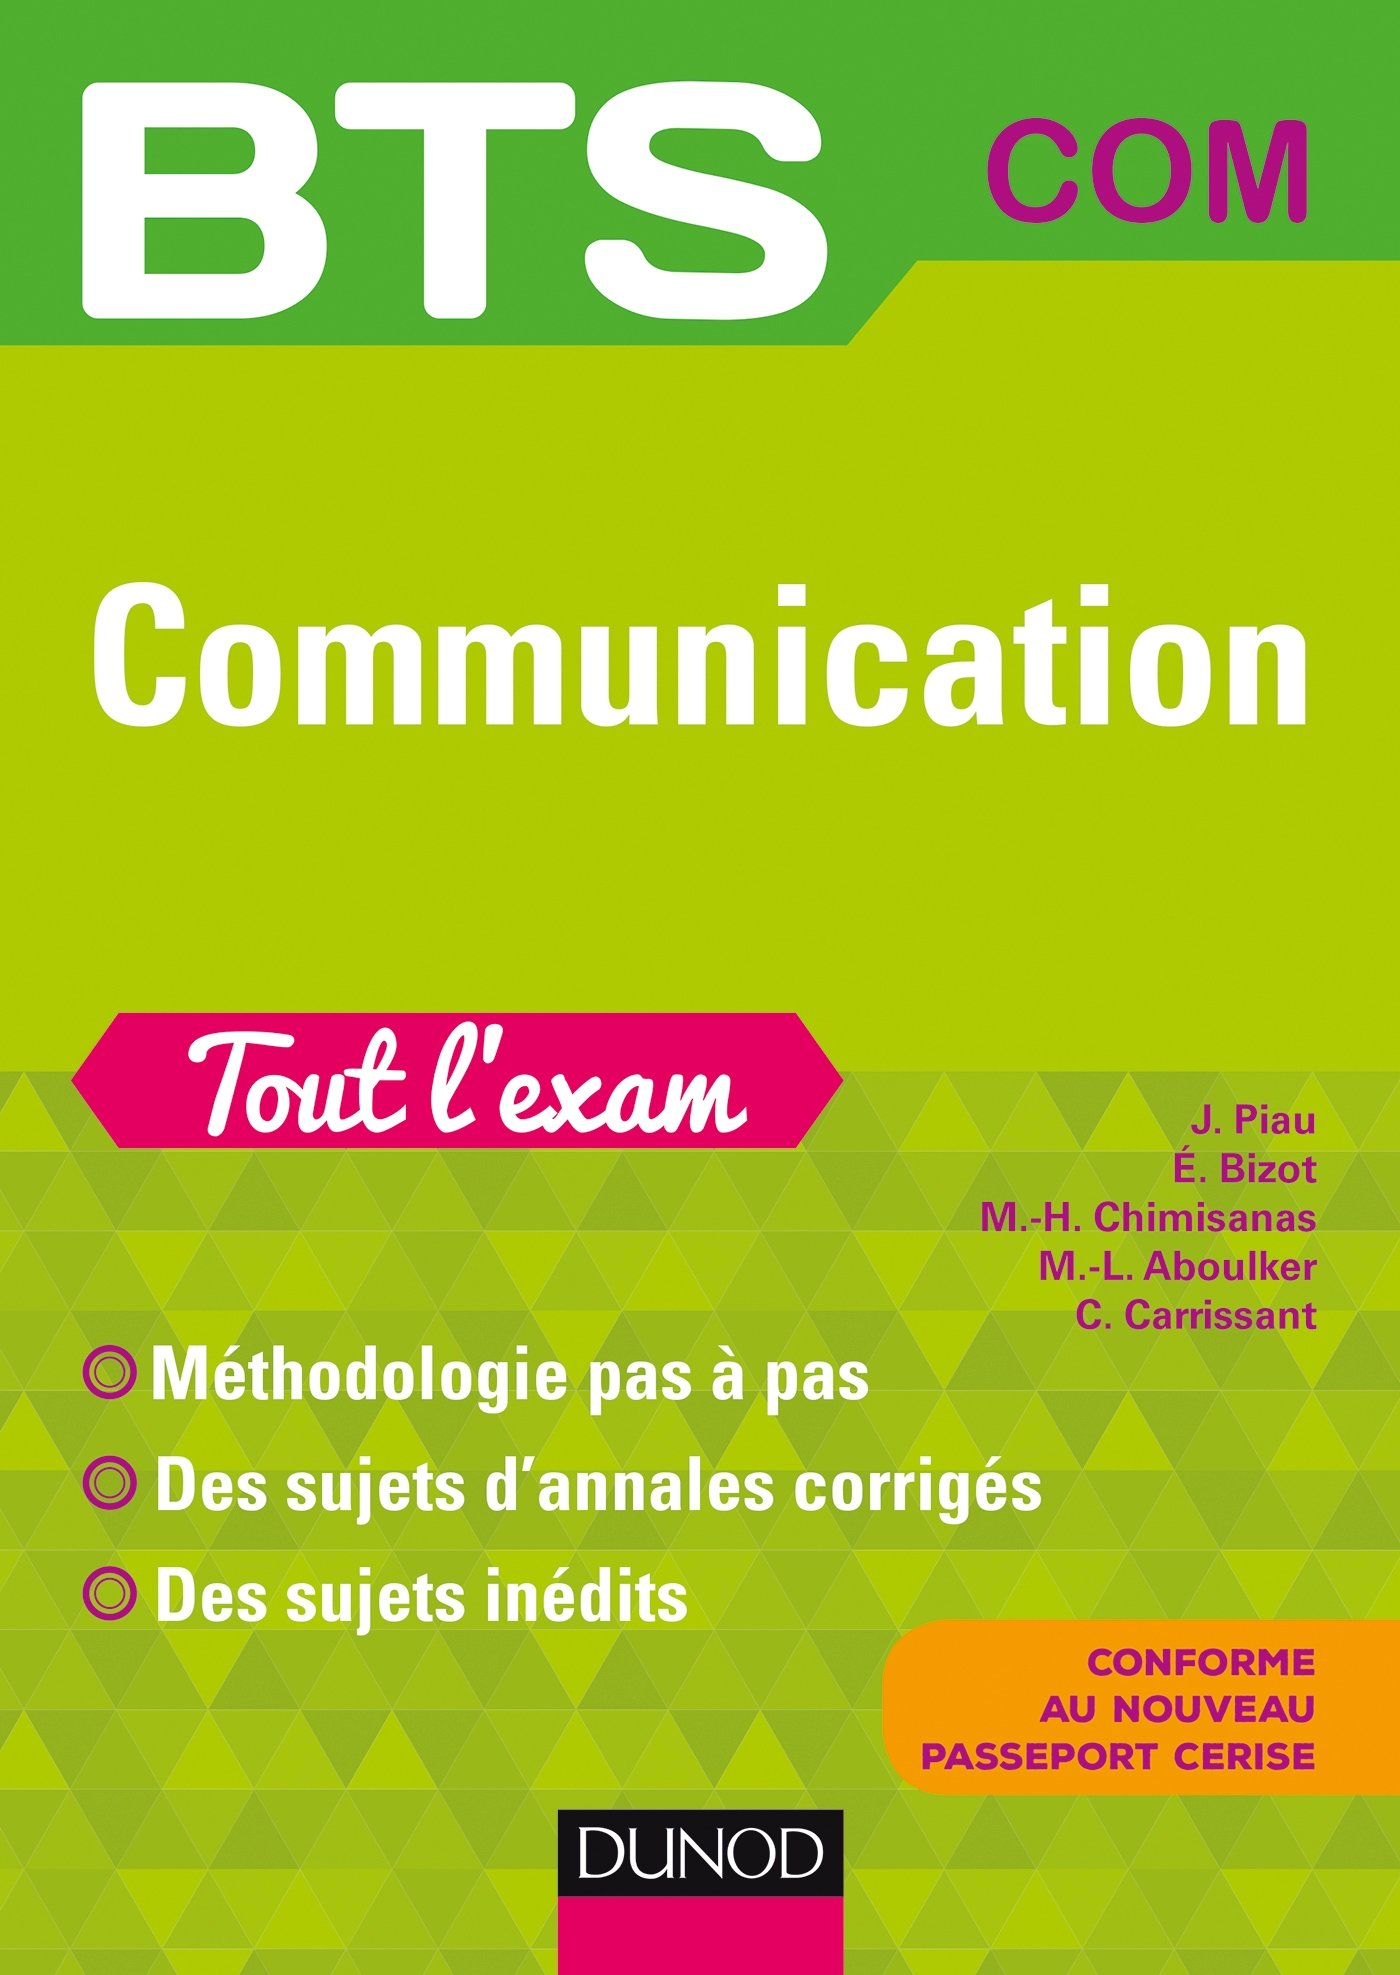 BTS Communication (French) Paperback – August 31, 2016